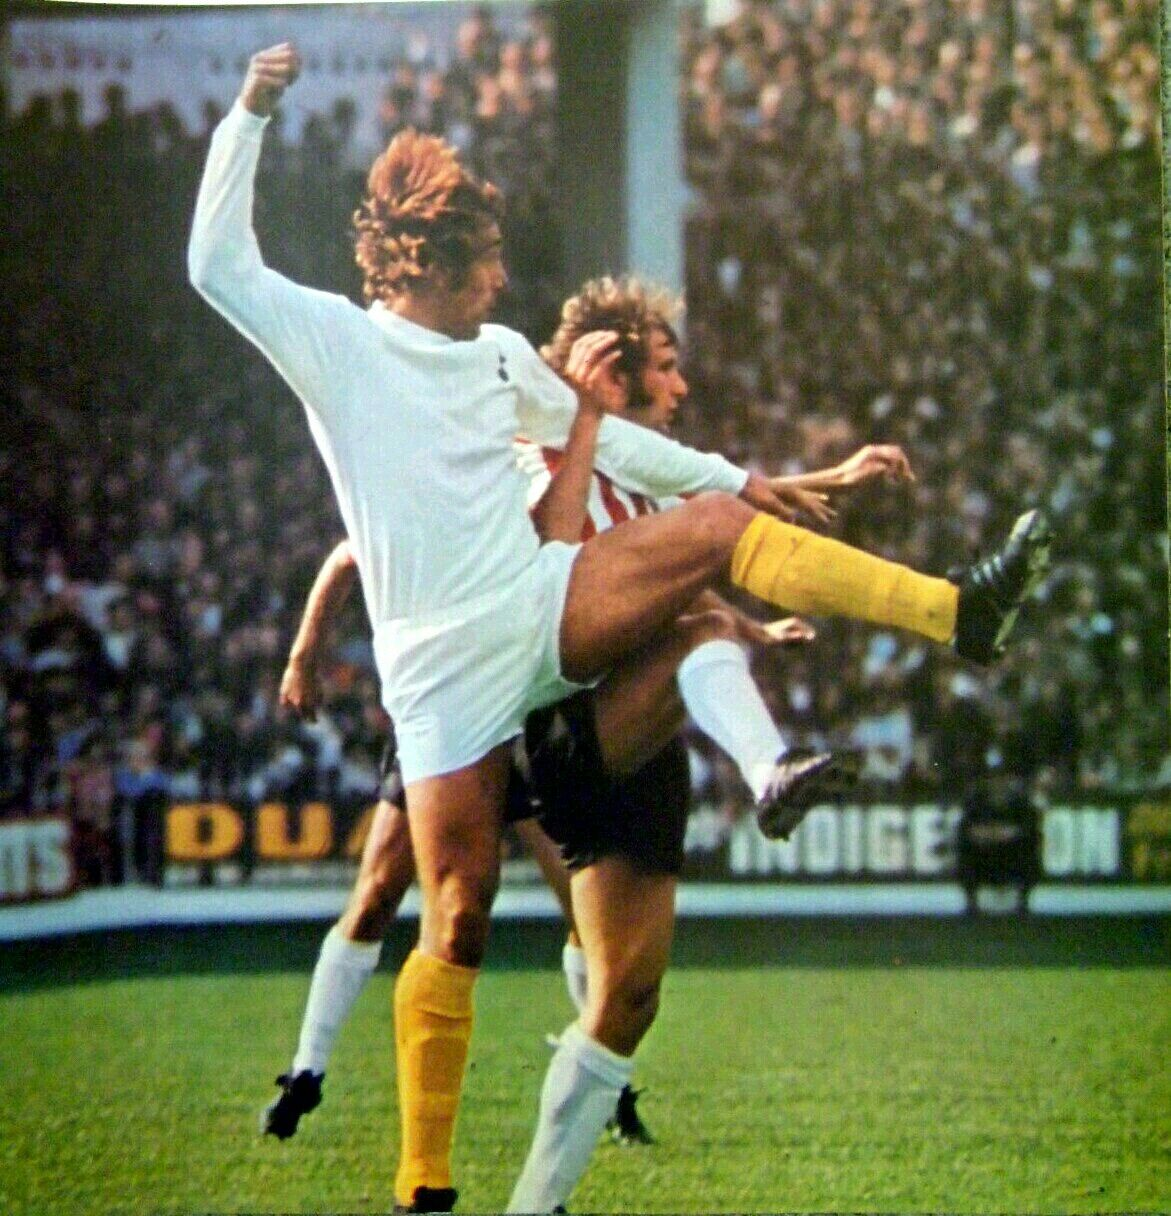 Sheffield Utd 2 Tottenham 2 in Sept 1971 at Bramall Lane. Martin Chivers gets a flick on the ball #Div1